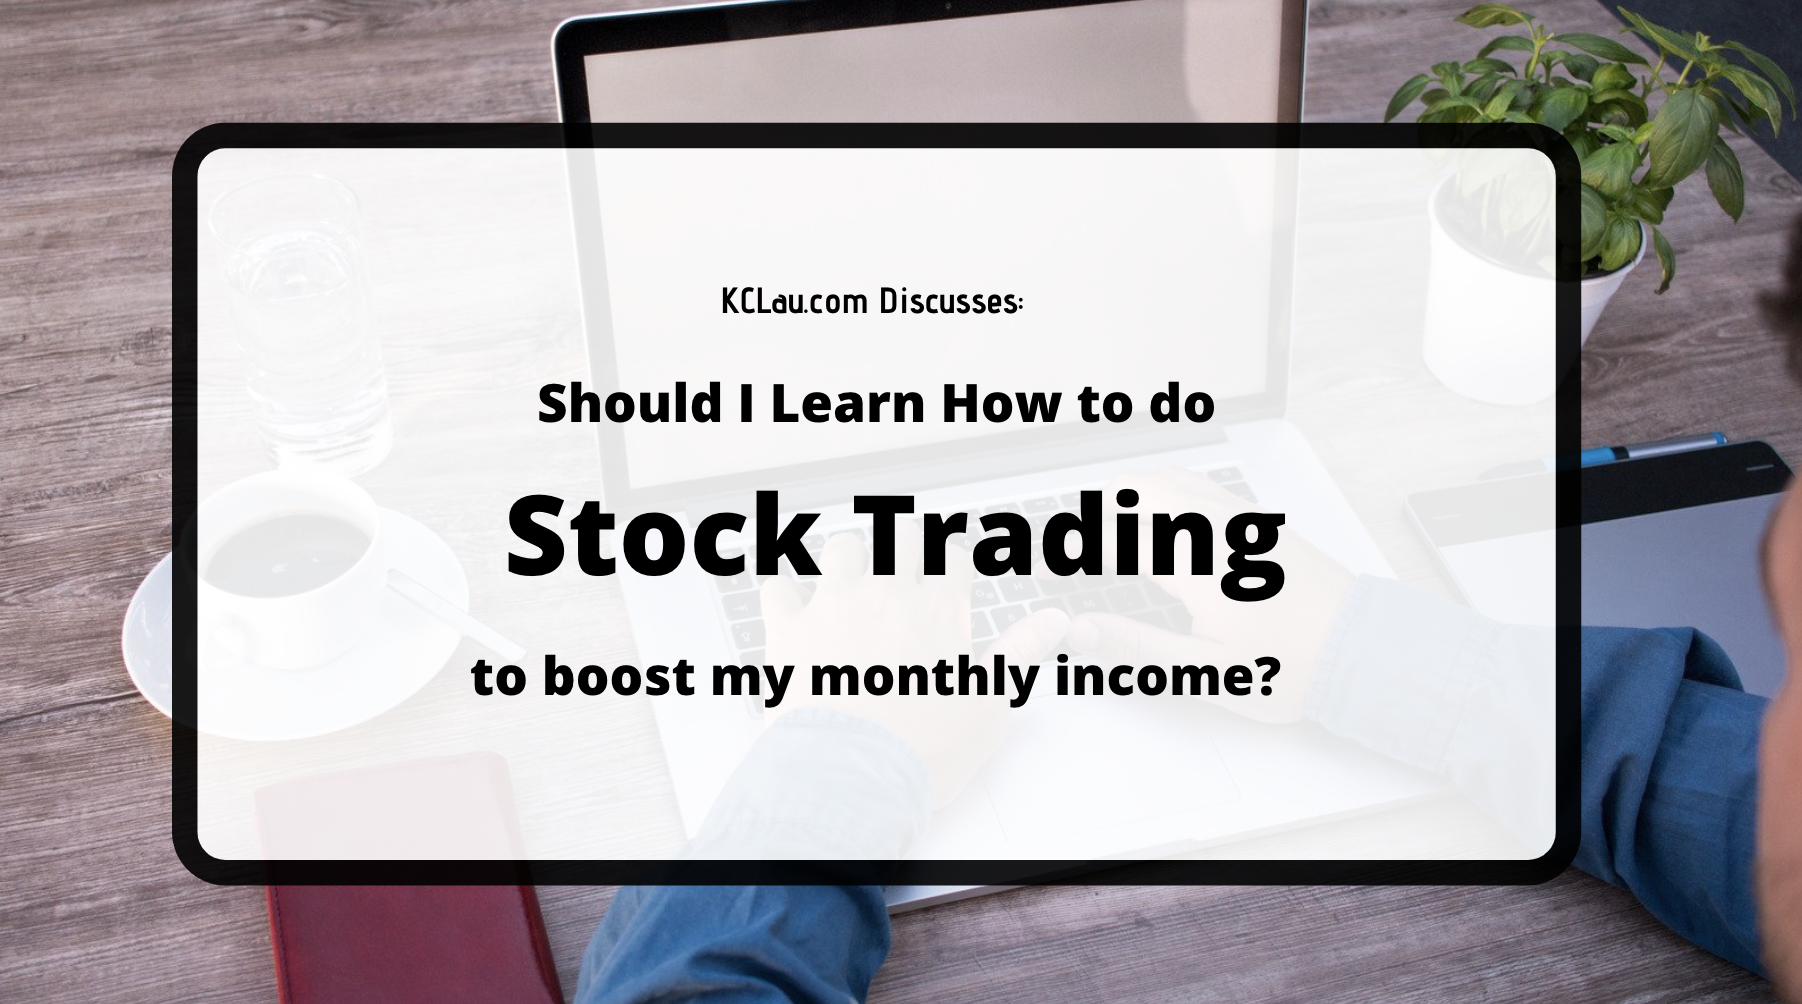 Should I Learn How to do Stock Trading?